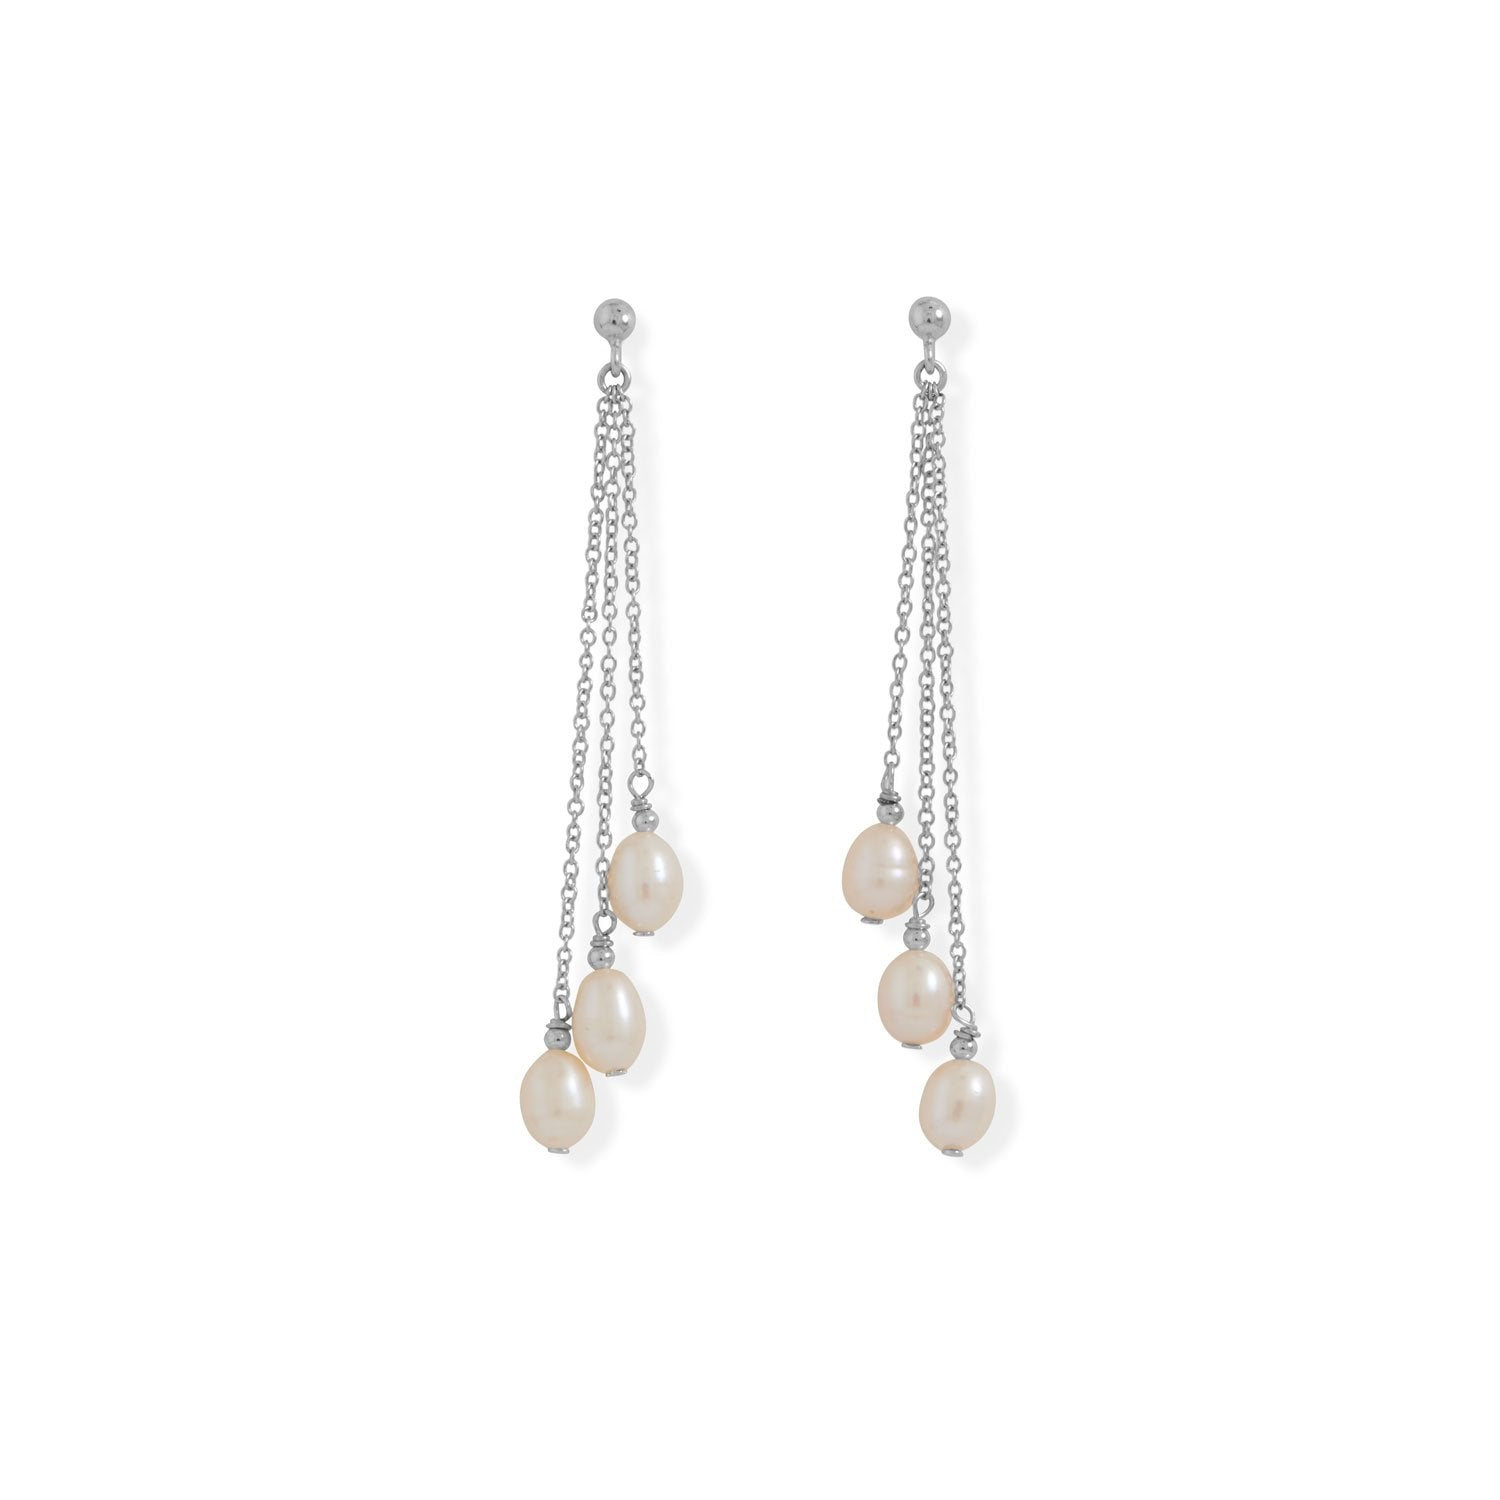 Cultured Freshwater Pearls Chain Drop Earrings